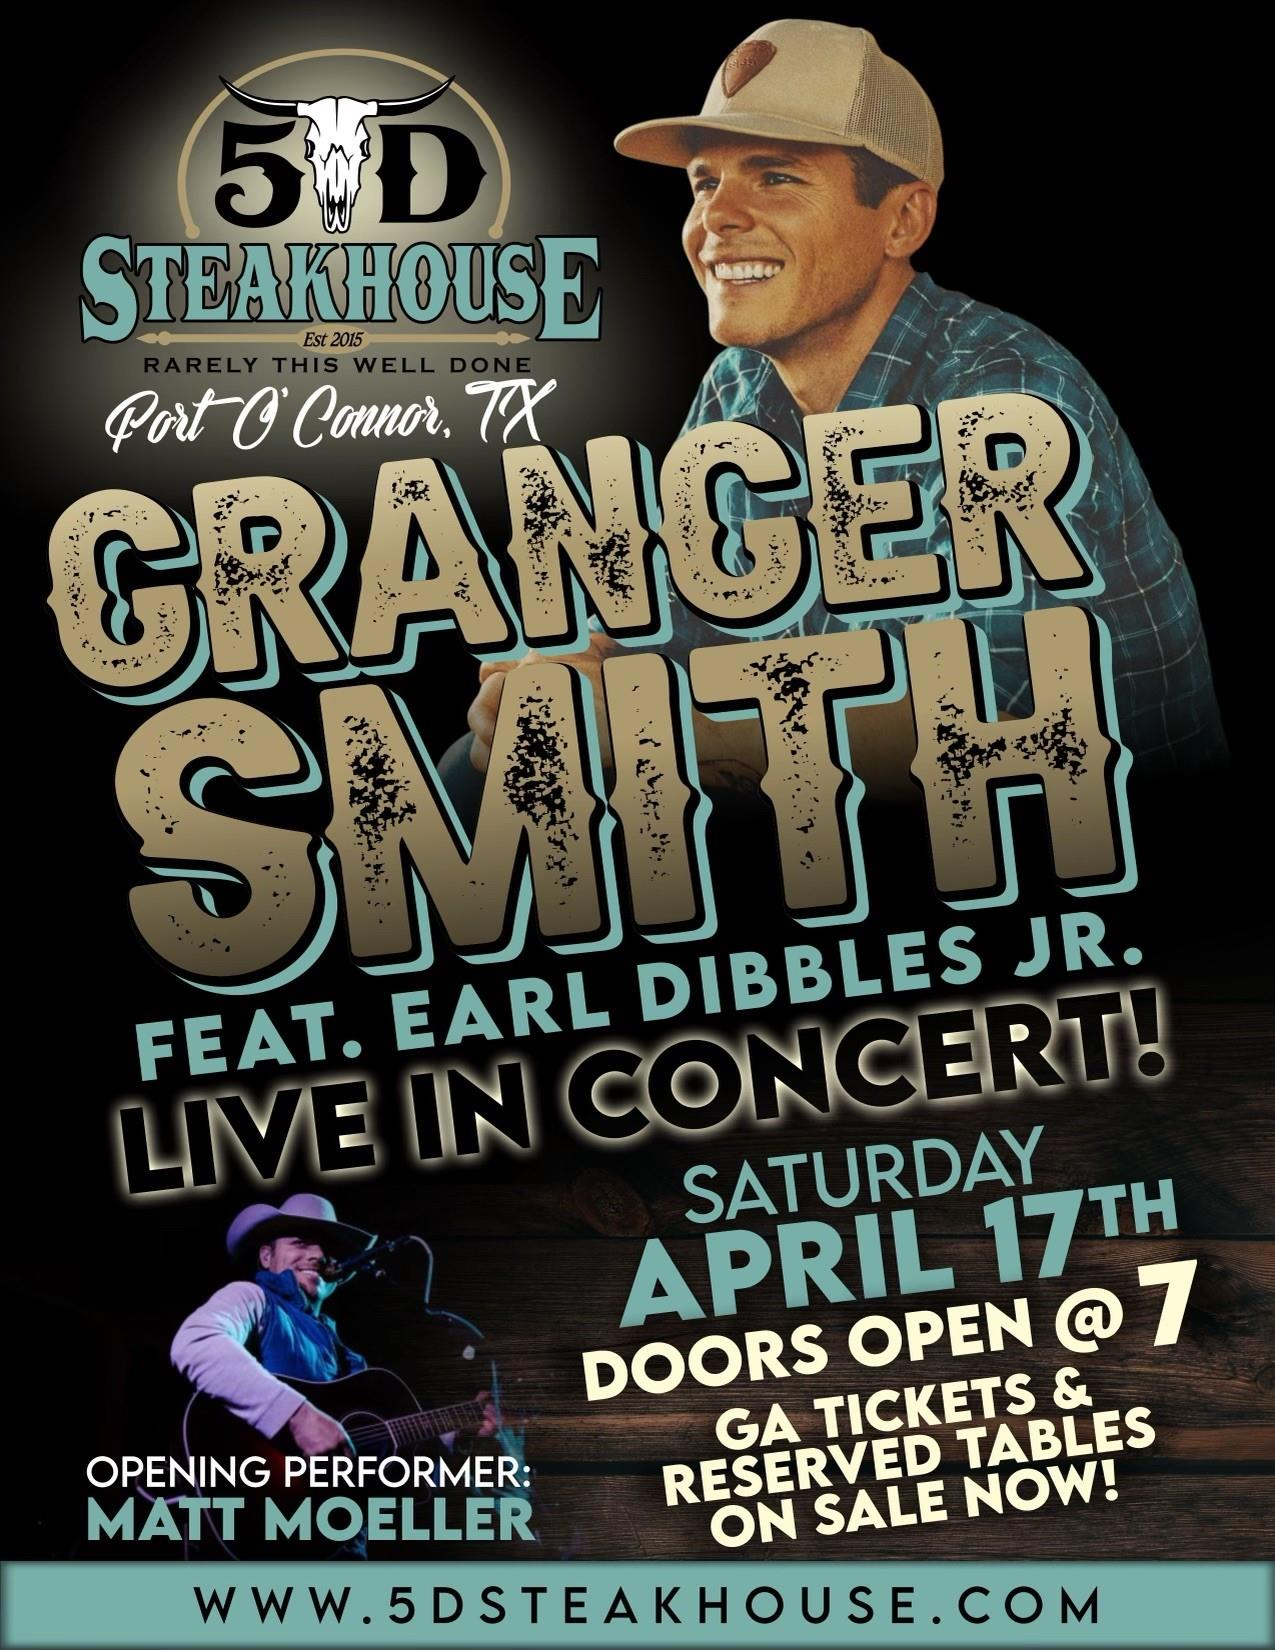 5D Steakhouse - Crancer Smith feat. Earl Dibbles Jr. Live in concert! Saturday, April 17th, doors open at 7pm. GA tickets & reserved tables on sale now!